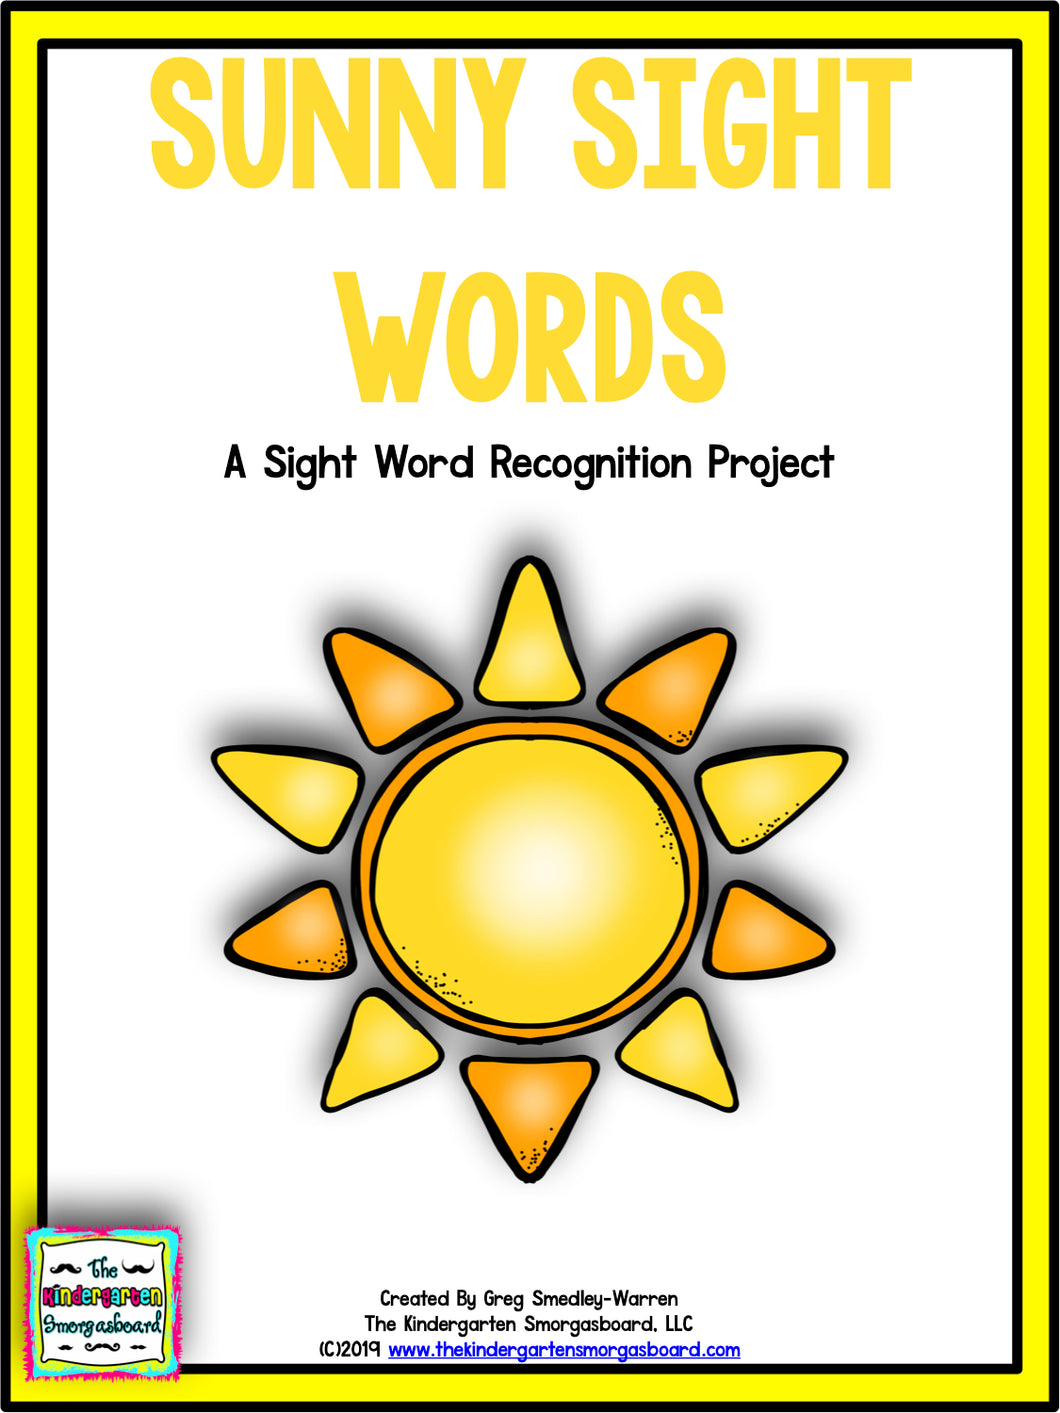 Sunny Sight Words Recognition Project